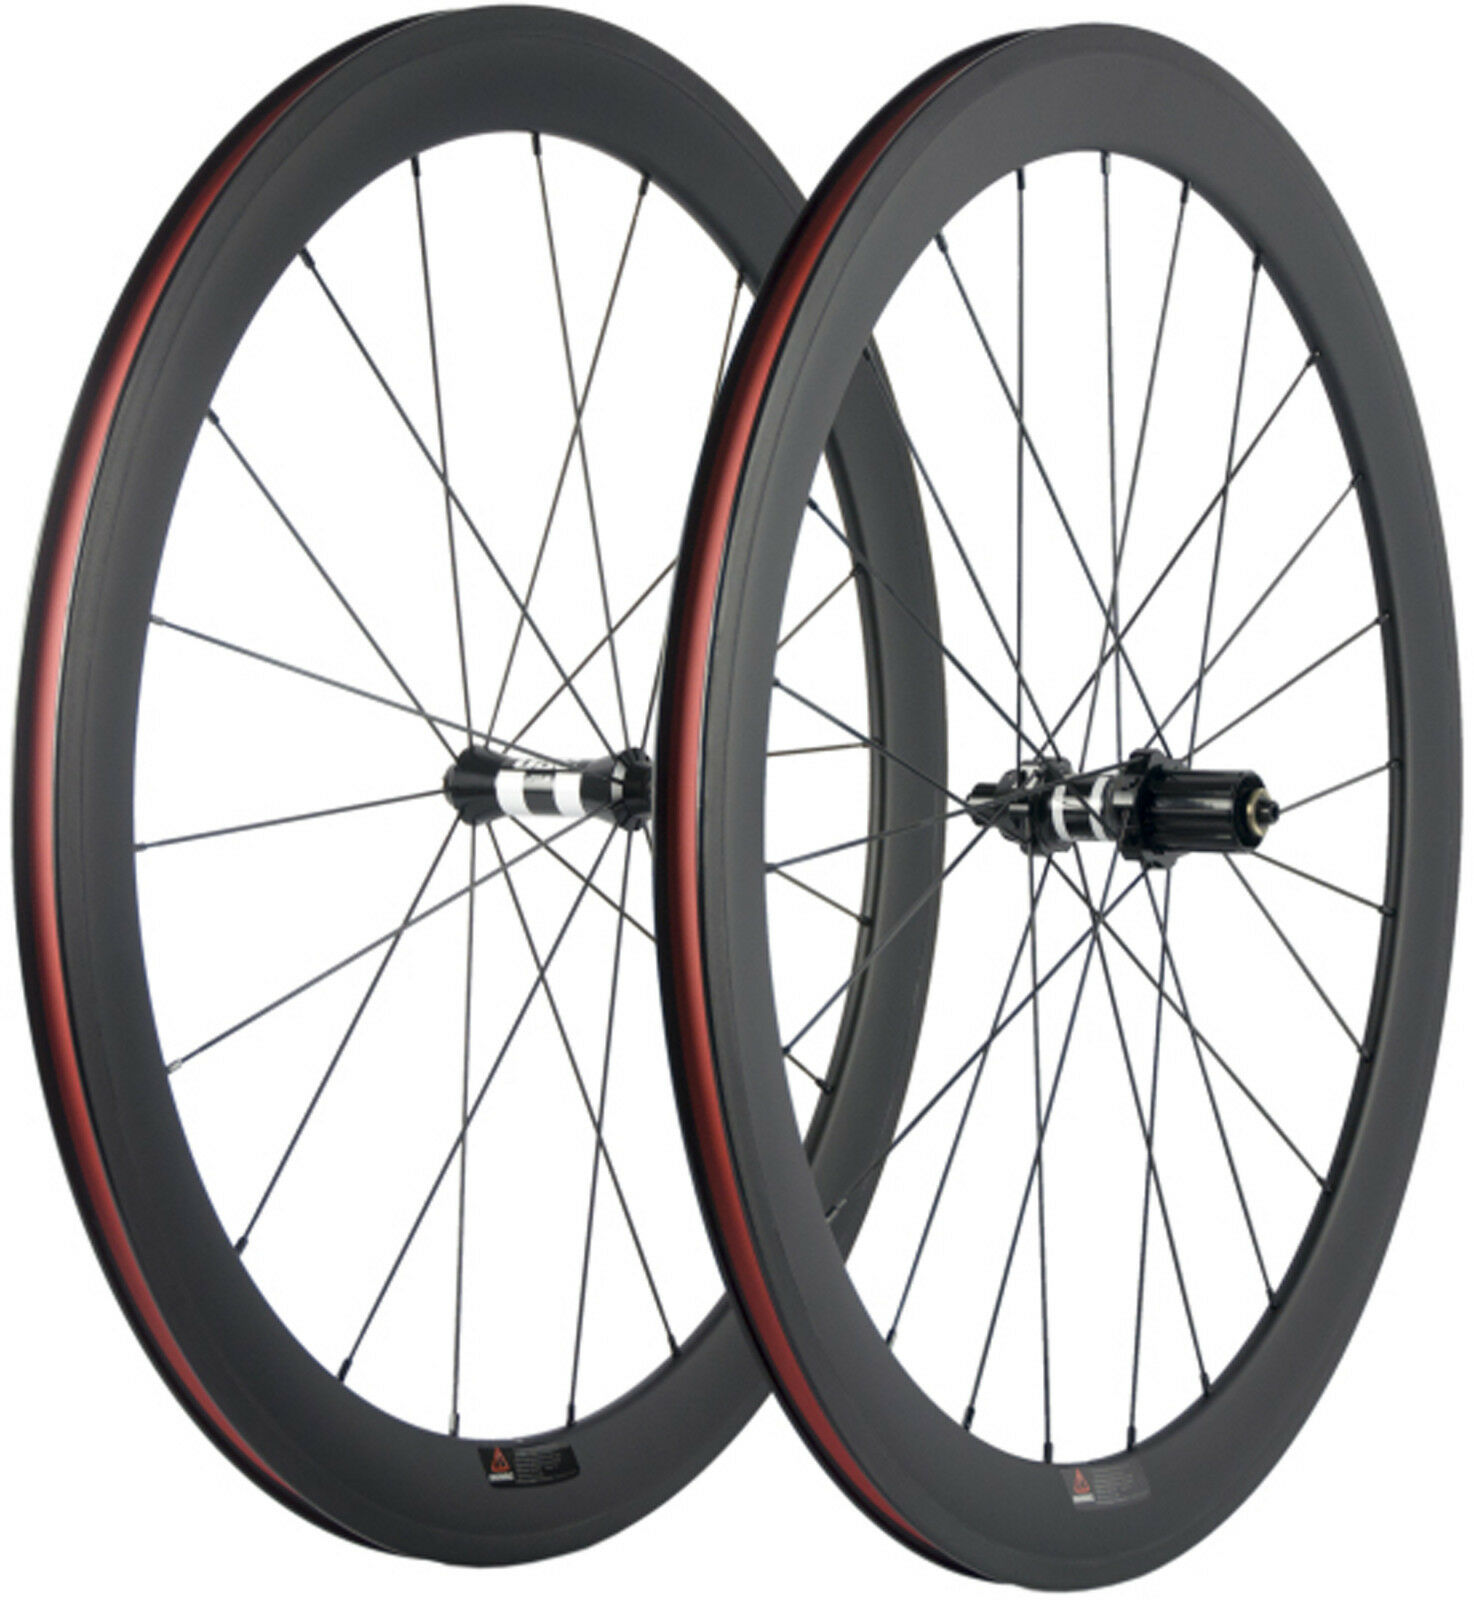 50mm Carbon Wheels DT350  Straight Pull Hub Clincher Wheelset 23mm Width 700C  up to 60% off